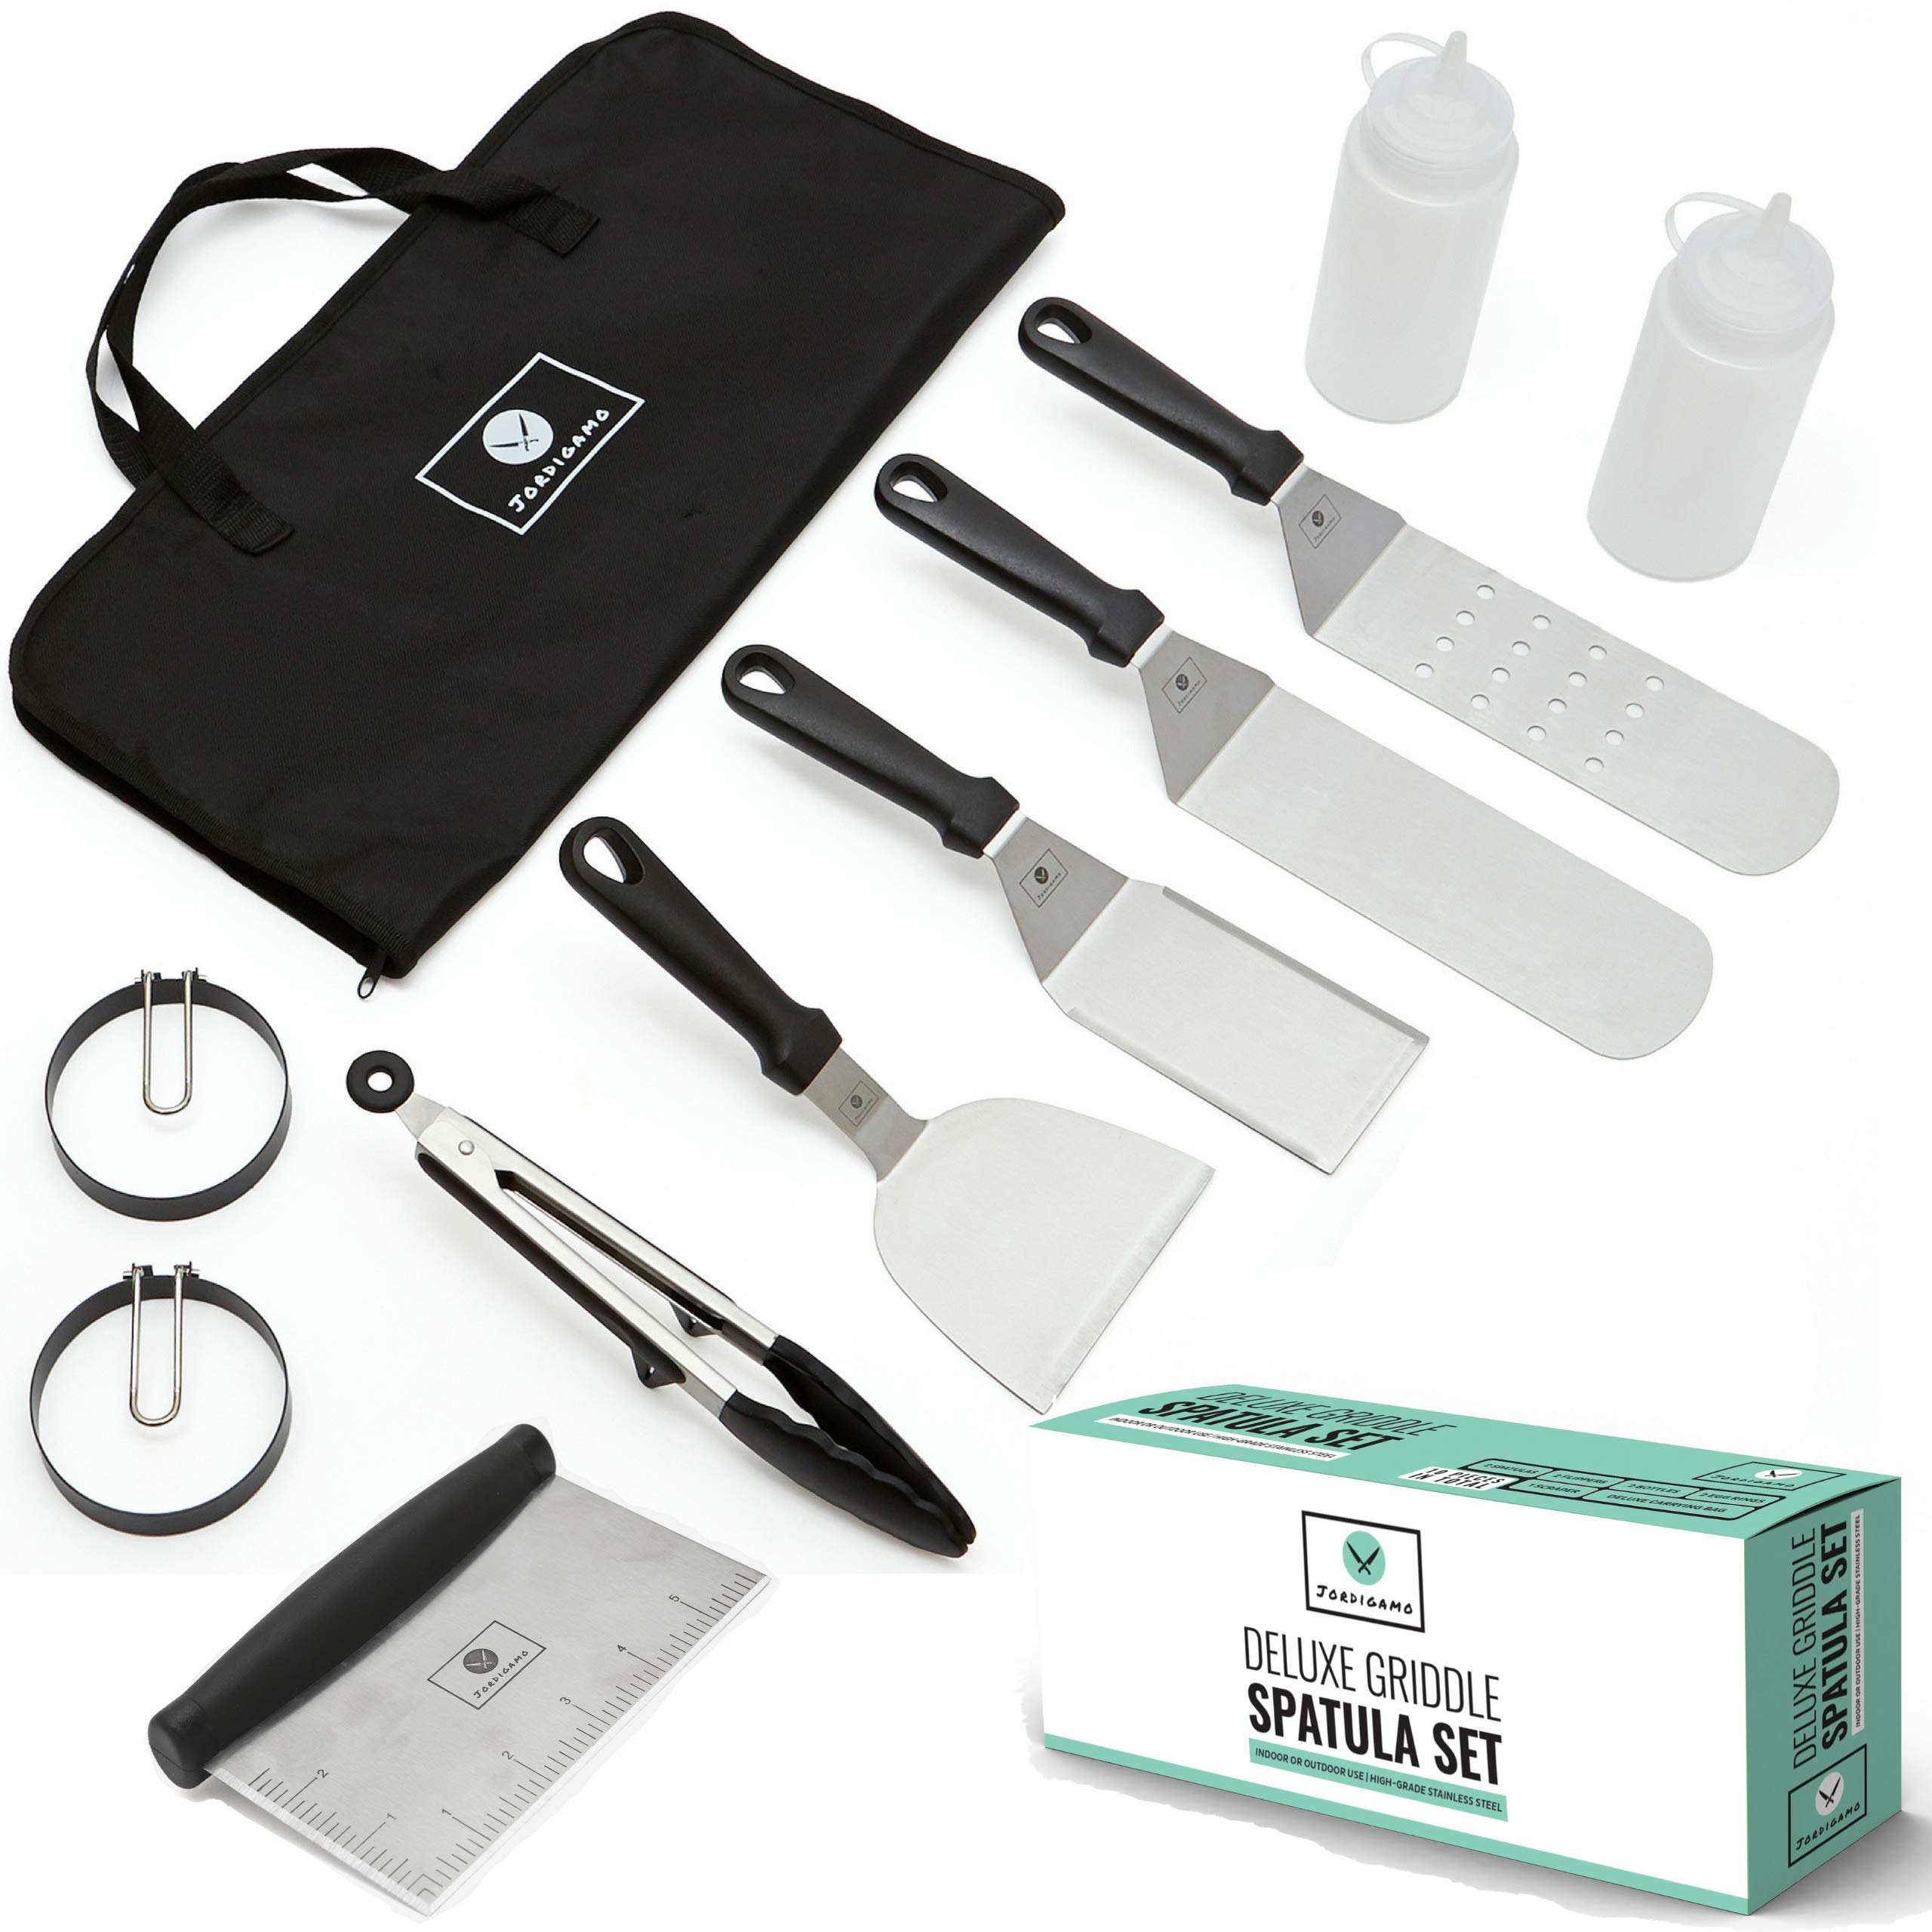 Professional Stainless Steel Griddle Cooking Kit - Grill Spatula Tongs Egg Ring Flipper Scraper Carrying Bag - Camping Tailgating Kitchen Outdoor BBQ - Grilling Hibachi Accessories - Metal Tool Set